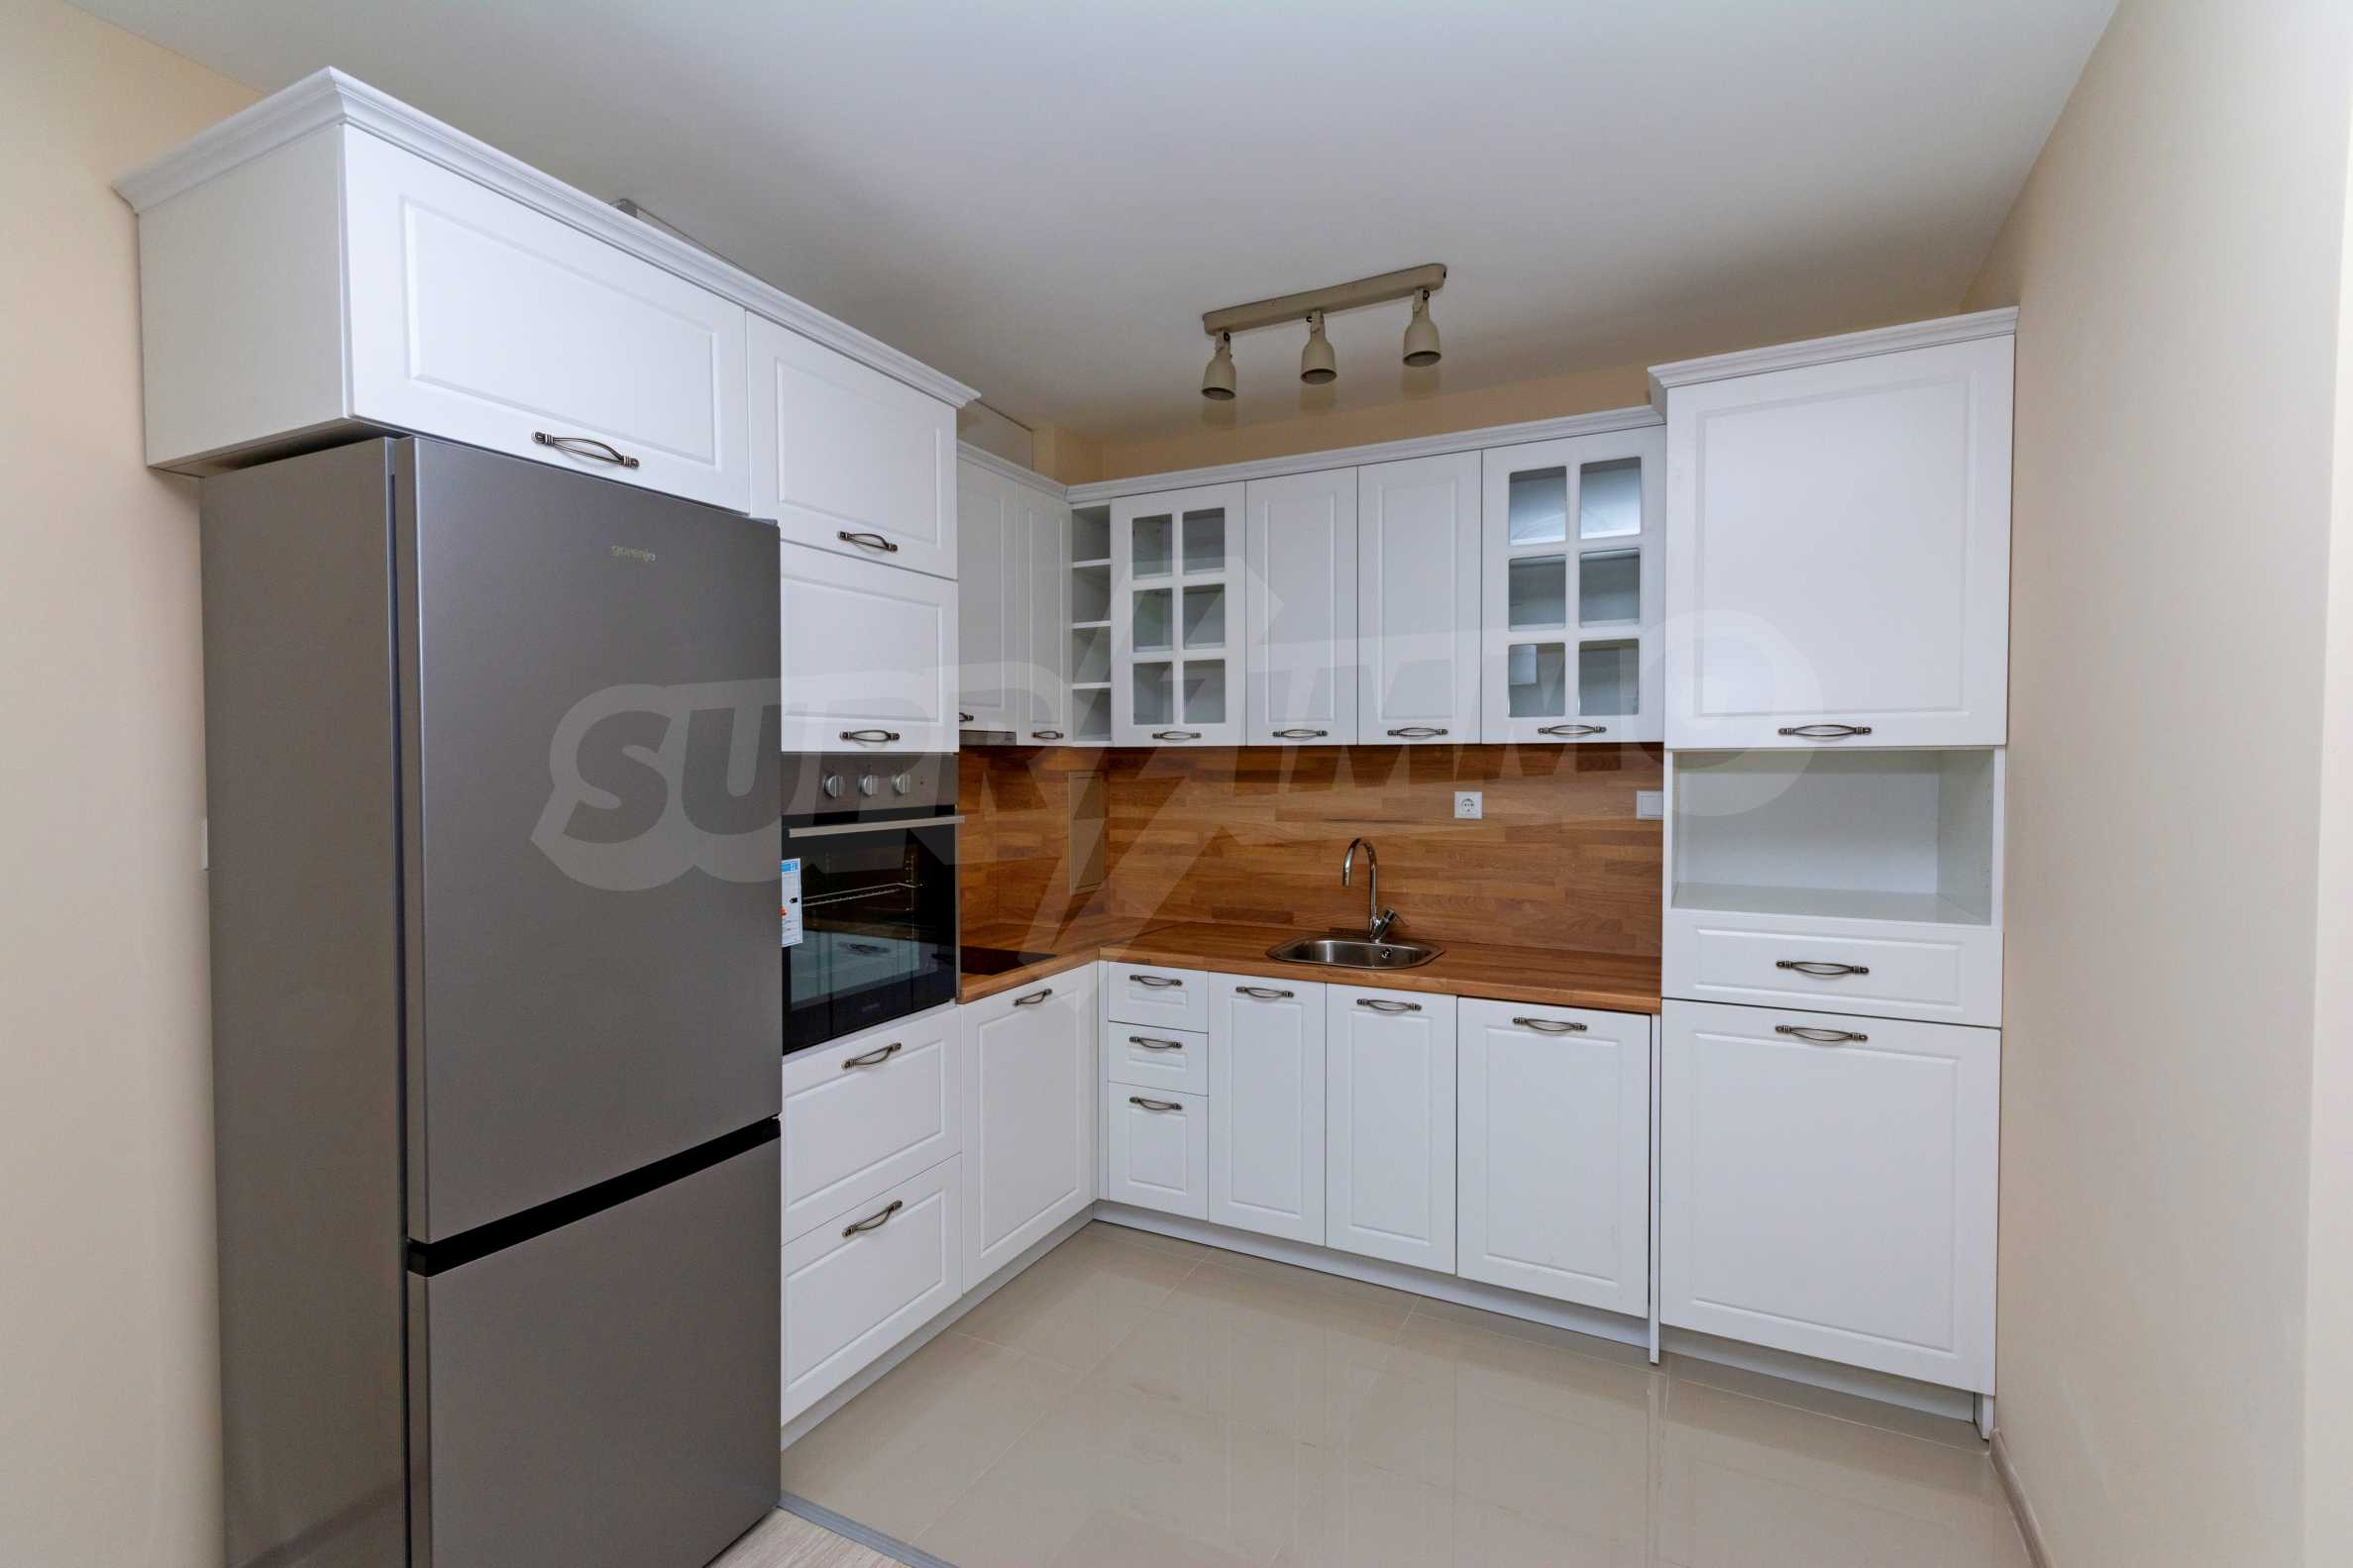 One bedroom apartment in a luxury residential building in a communicative location in Plovdiv 3